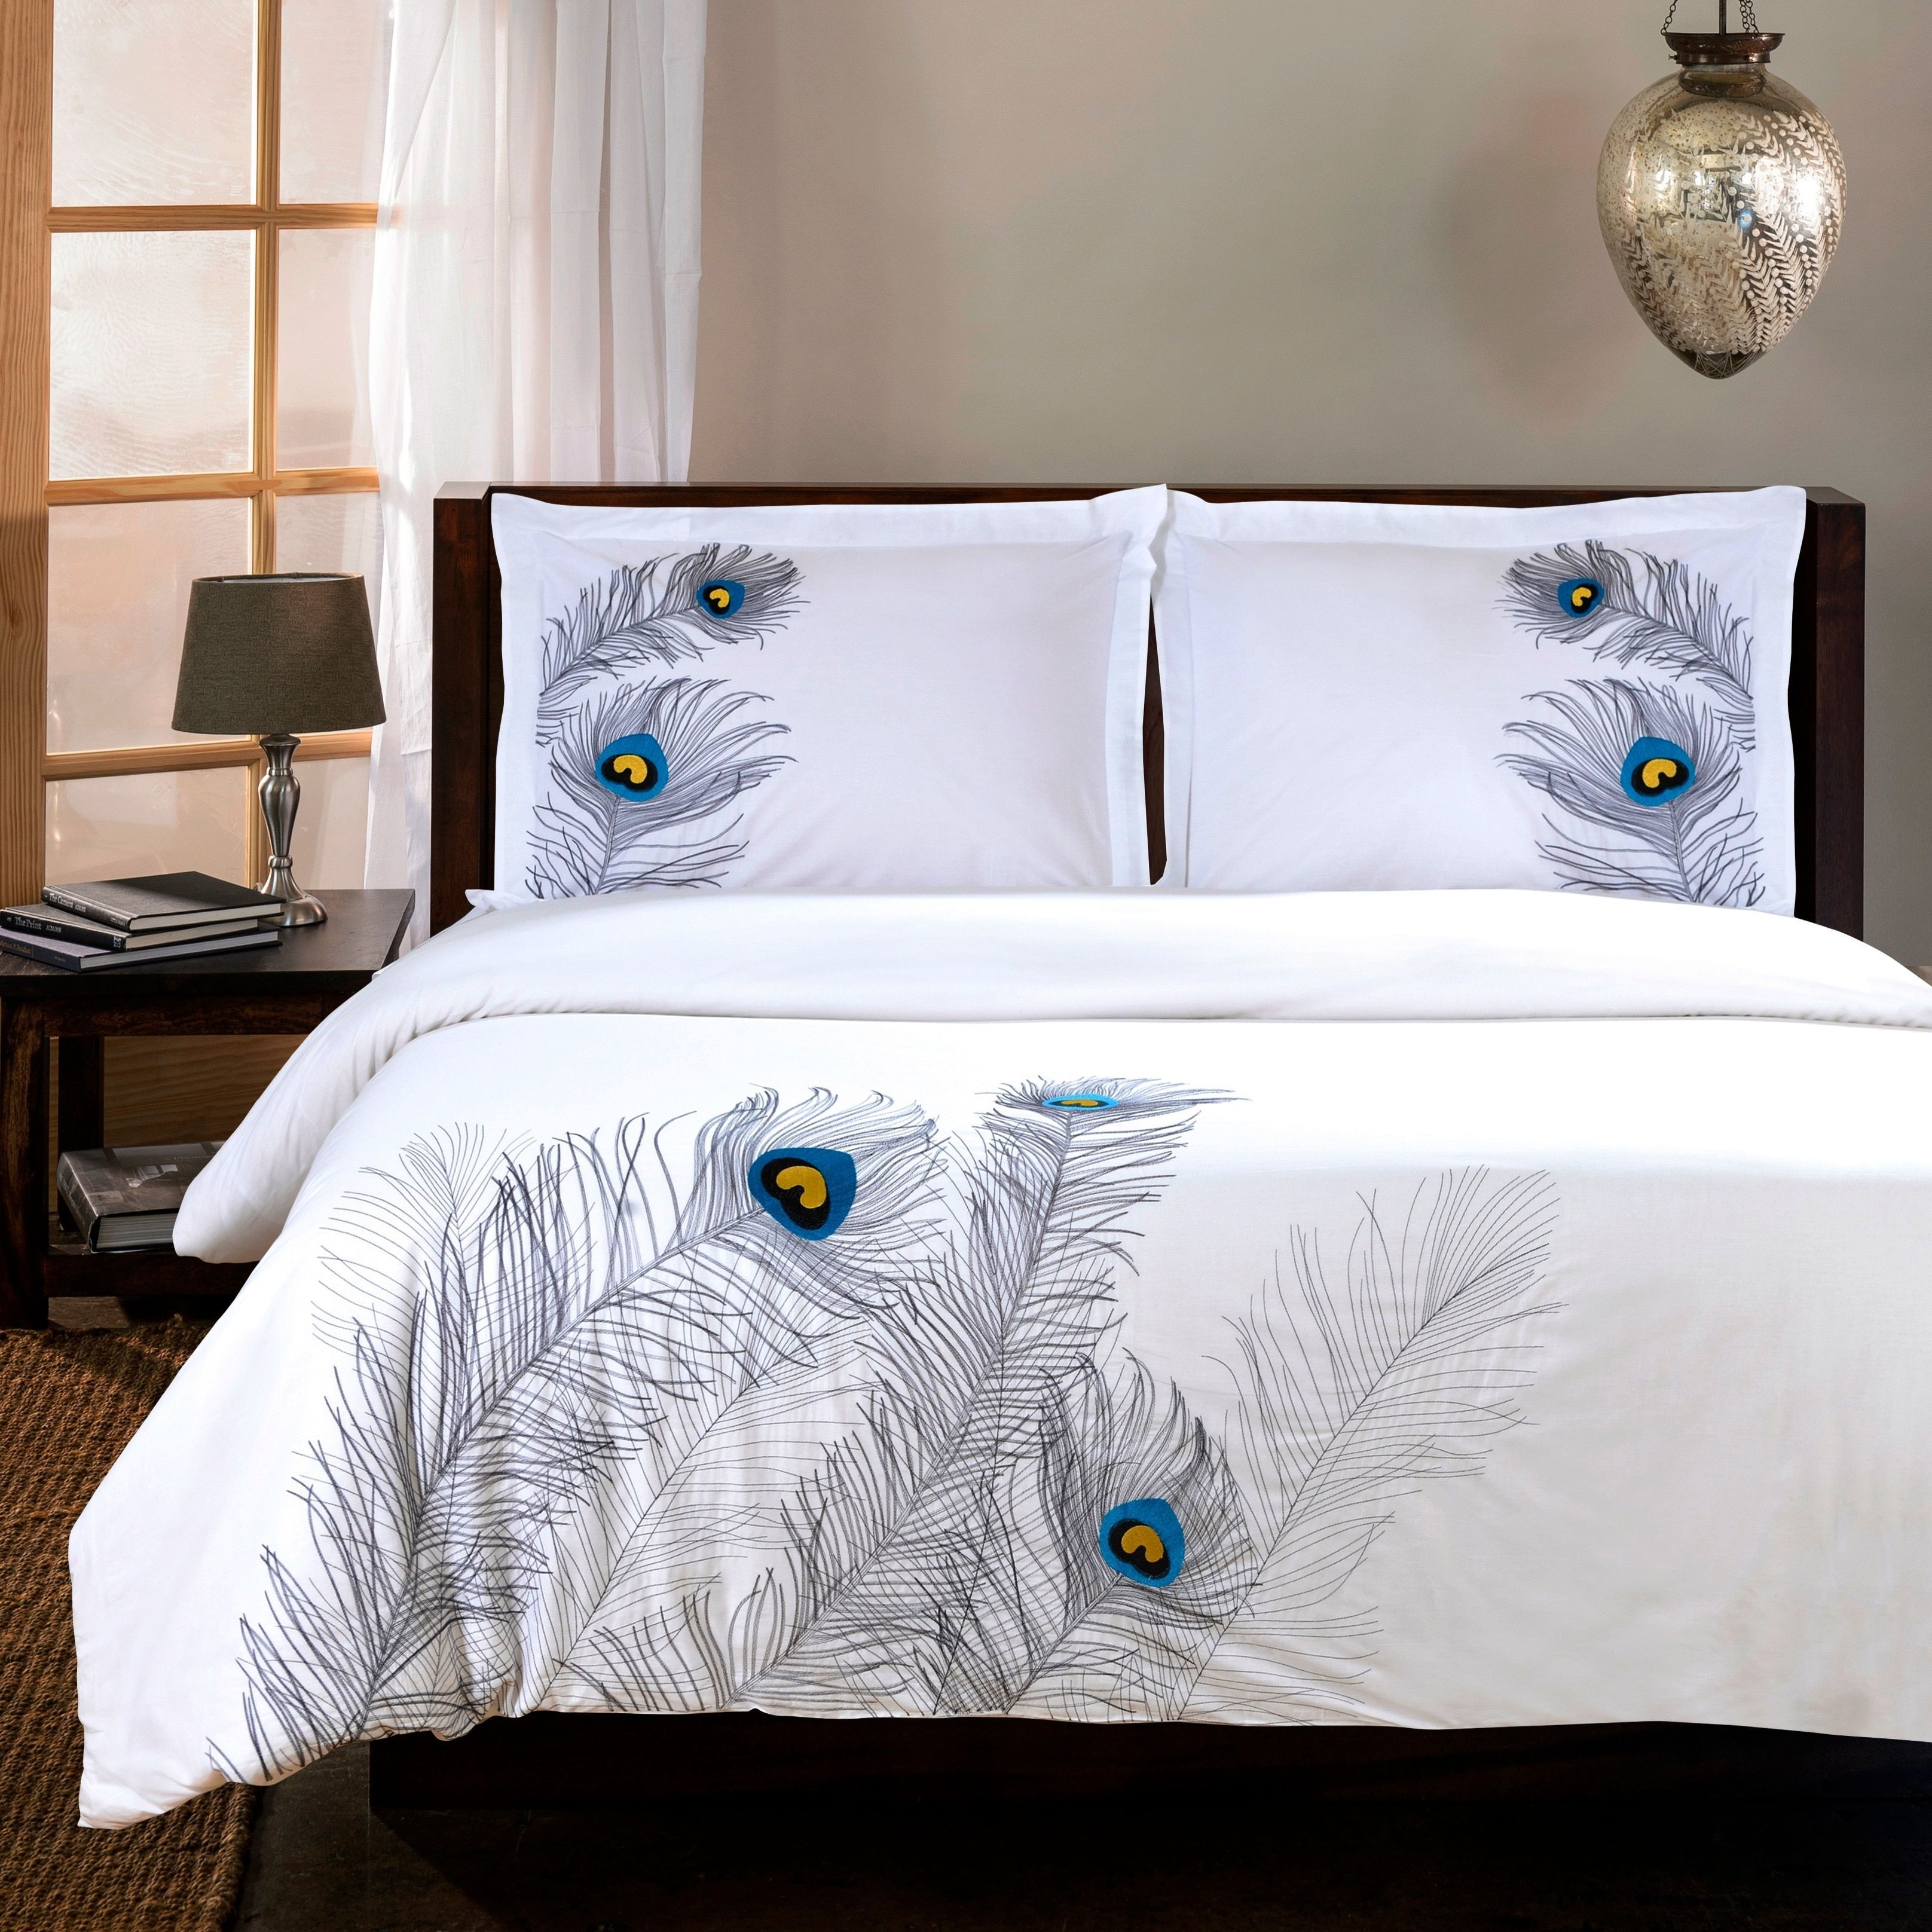 guides ruched solid buttons get king at california on white deals shopping line cover cotton quotations find enclosure with set duvet cheap